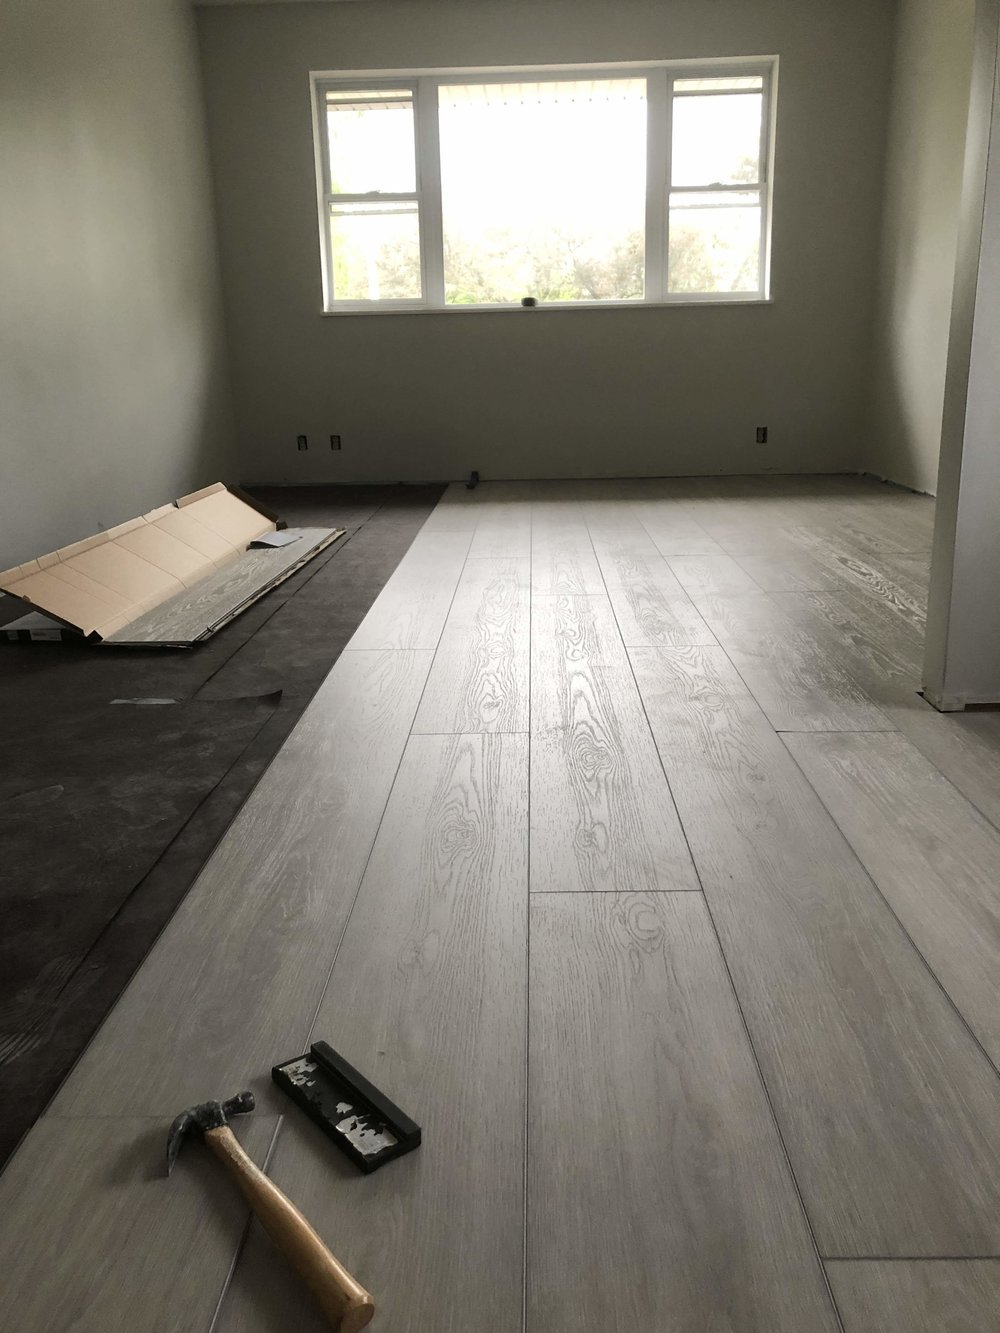 Then I laid the vapour barrier (aka tar paper) and started the flooring